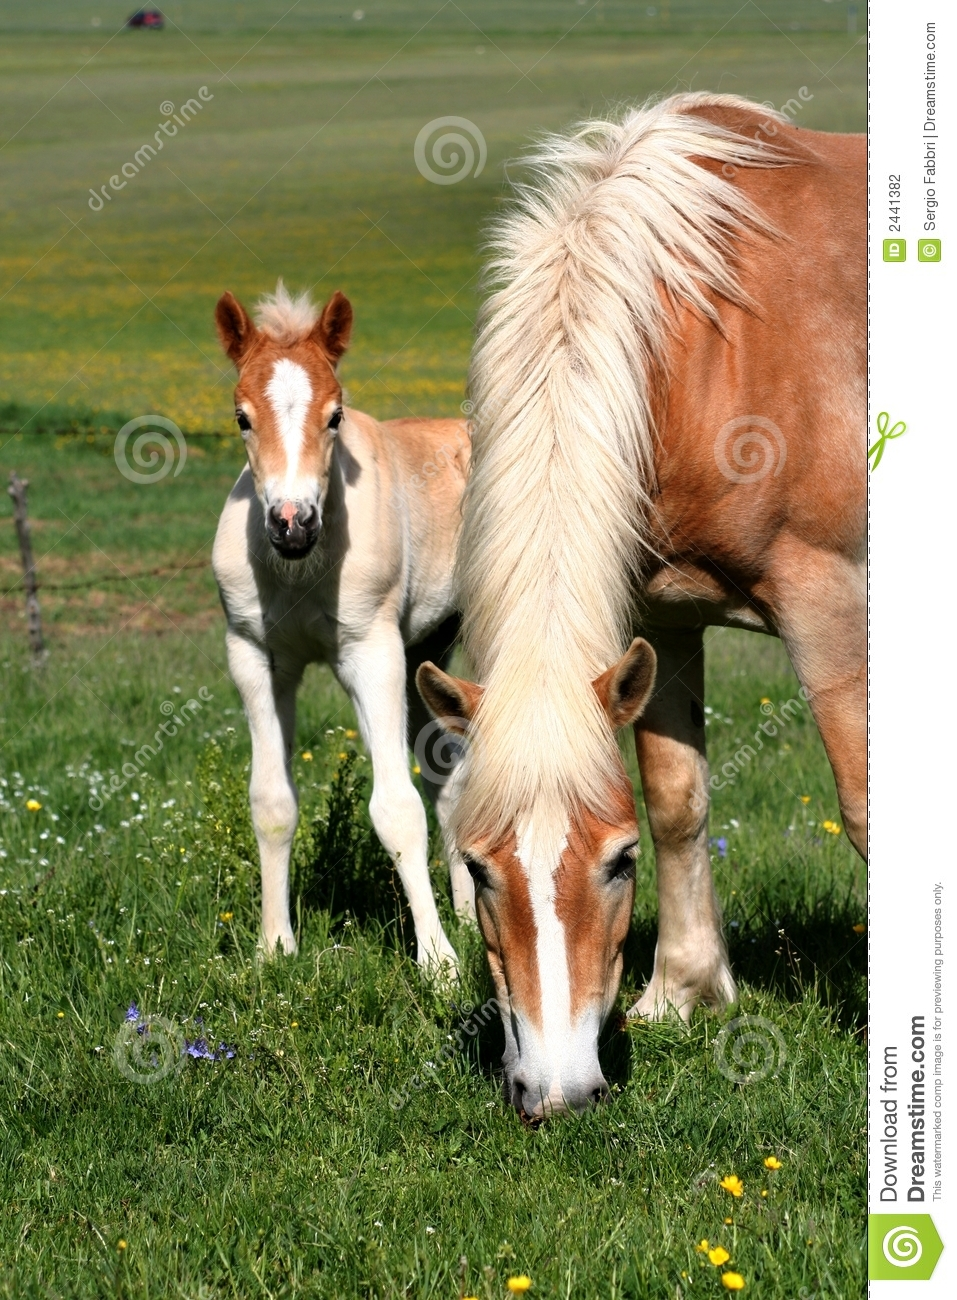 Horse eating grass and foal